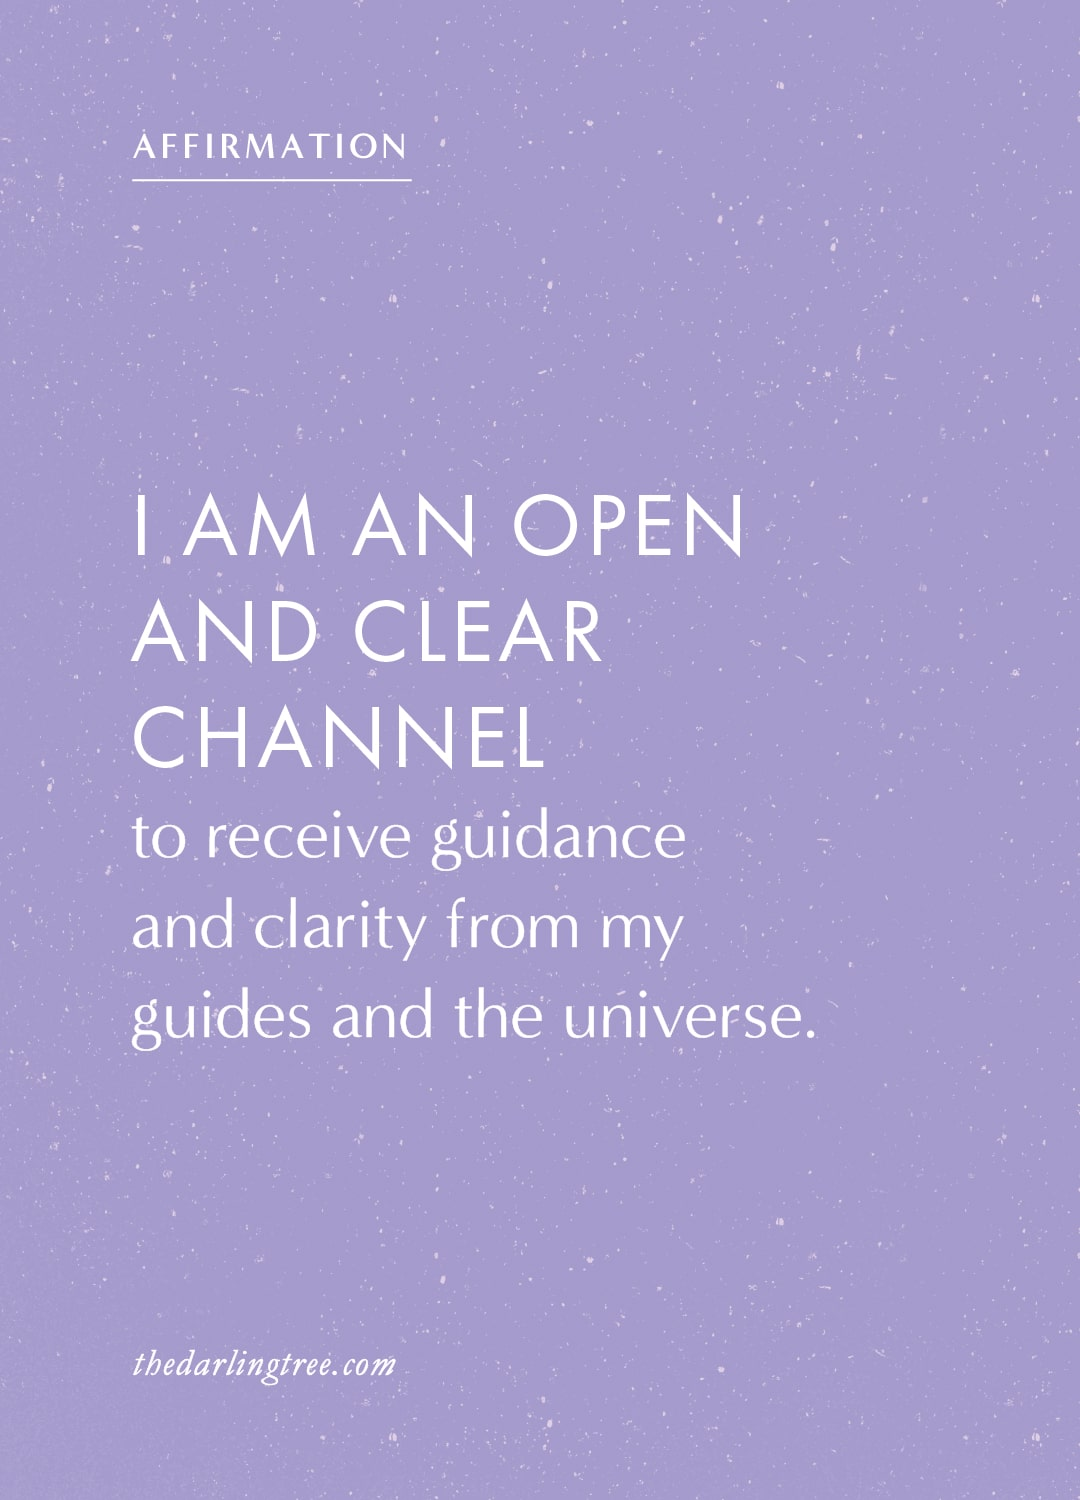 Affirmation: I am an open and clear channel